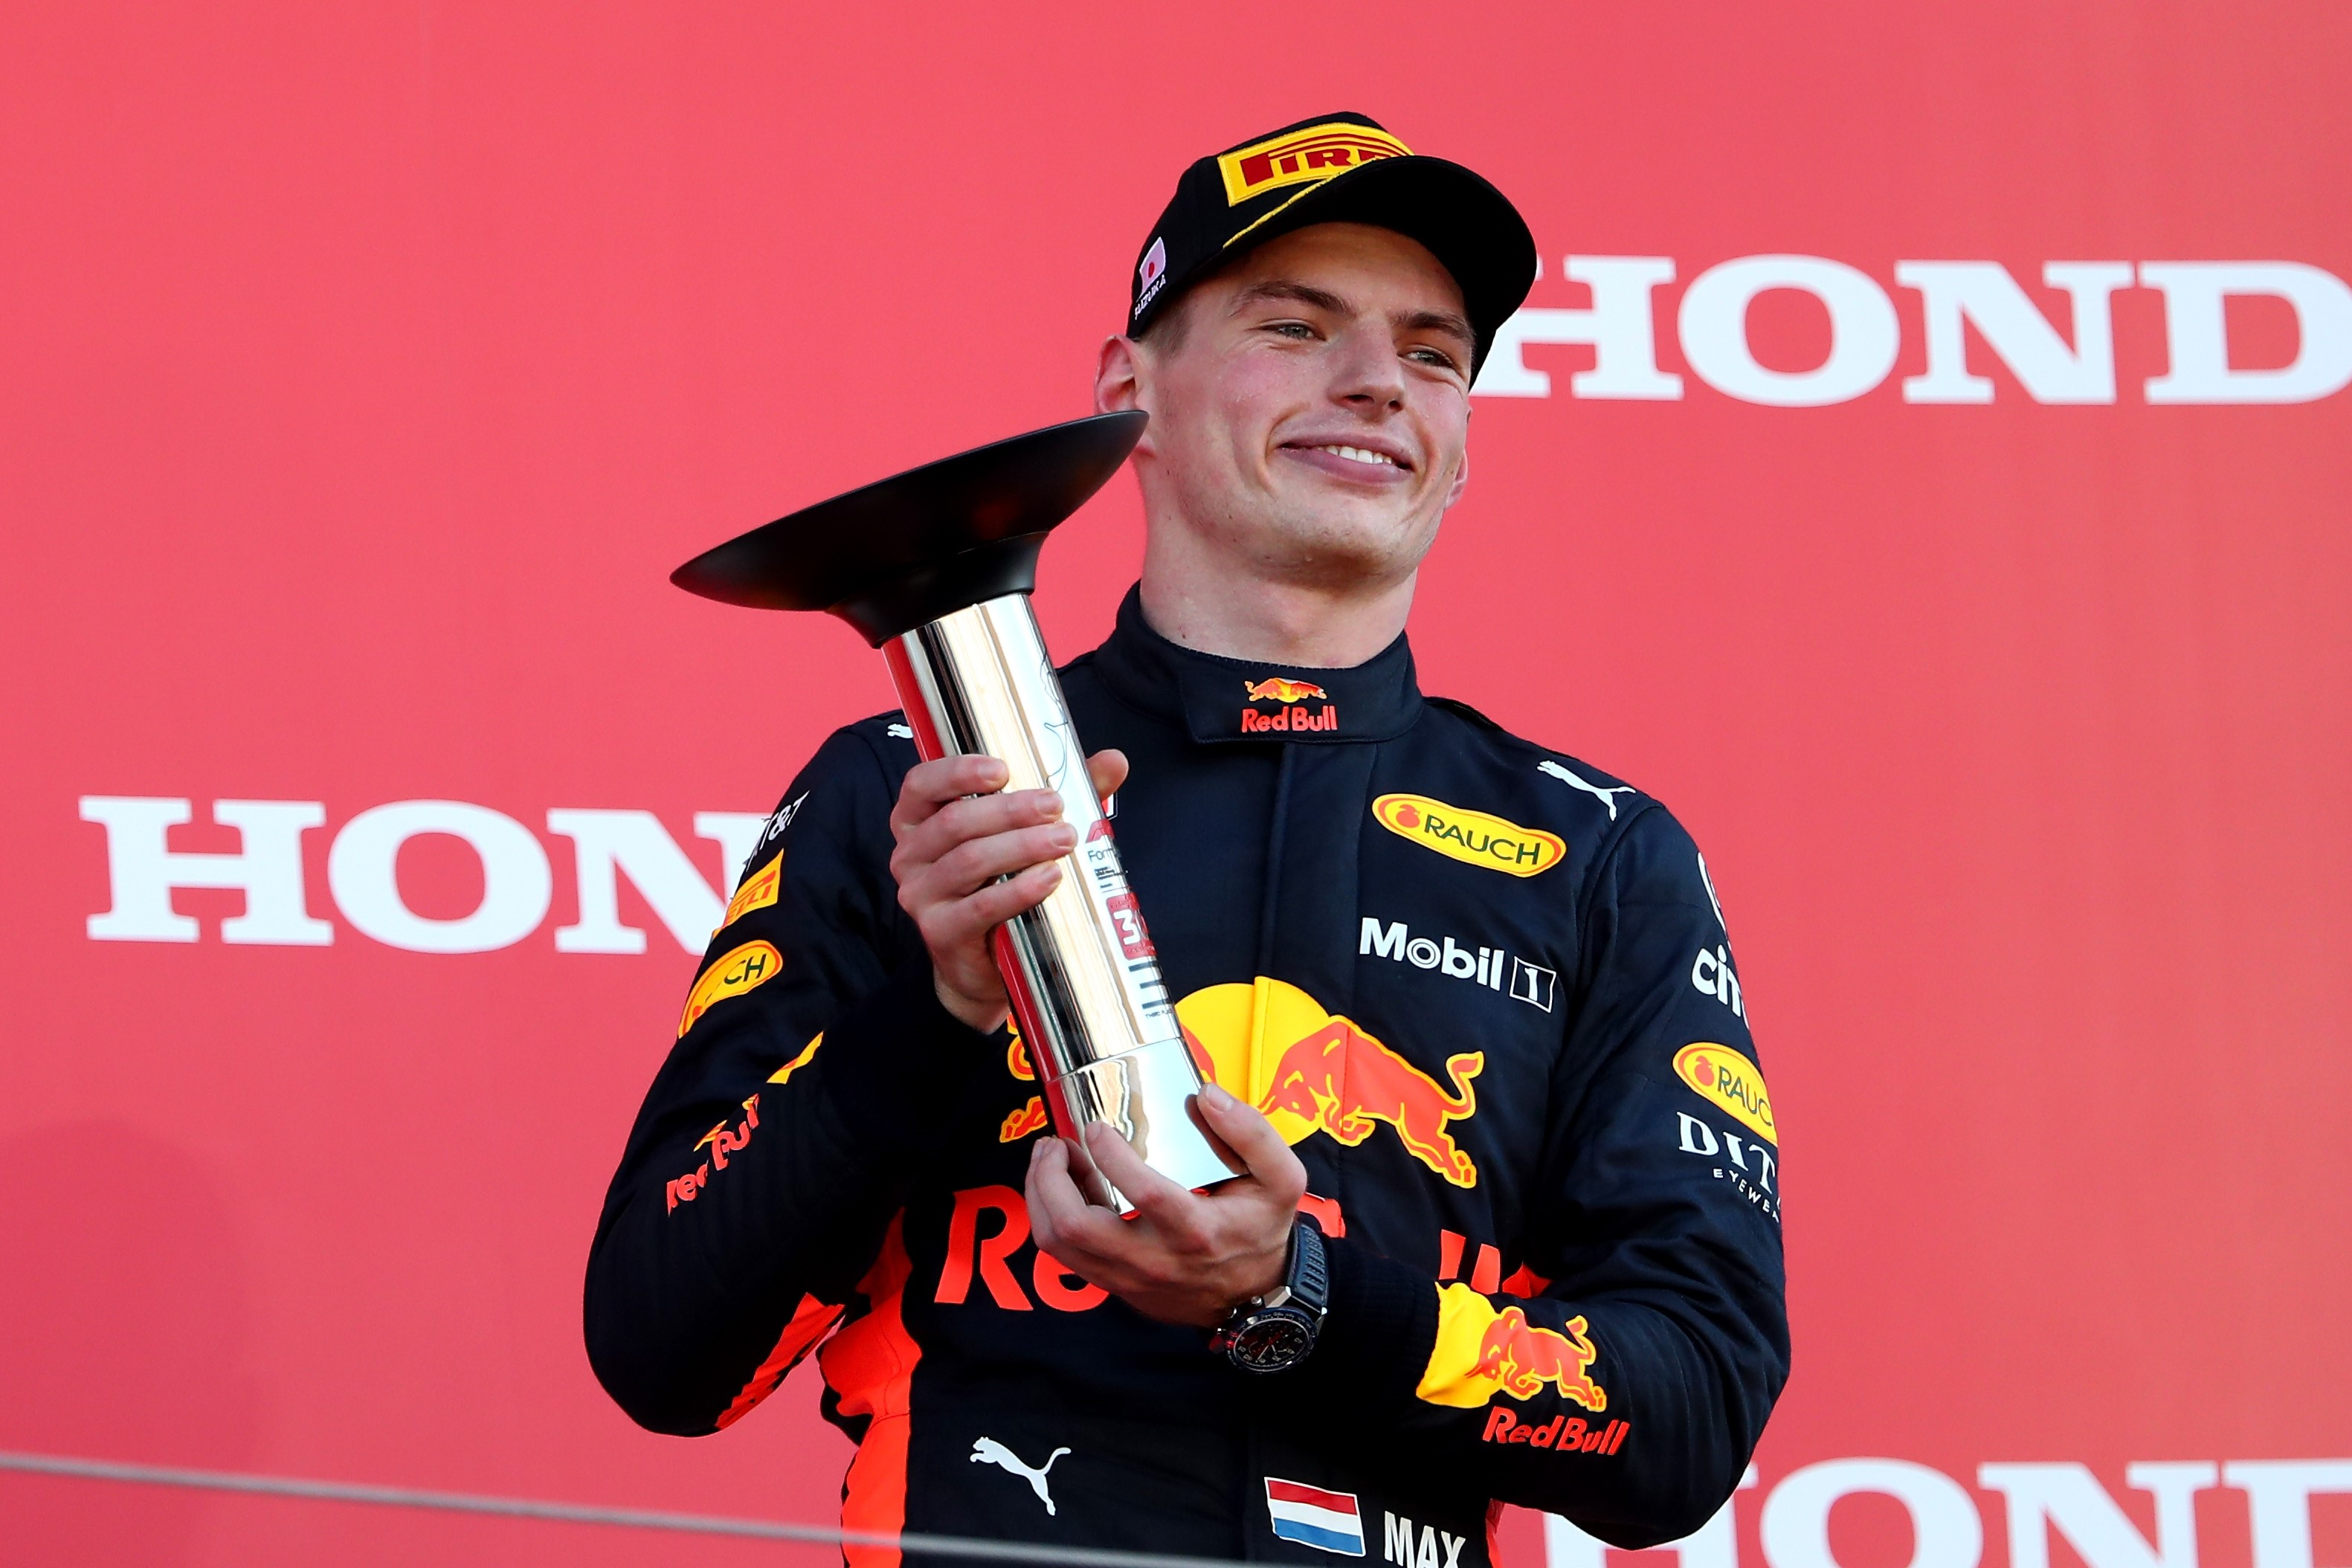 Max Verstappen (Red Bull) au Grand Prix du Japon 2018